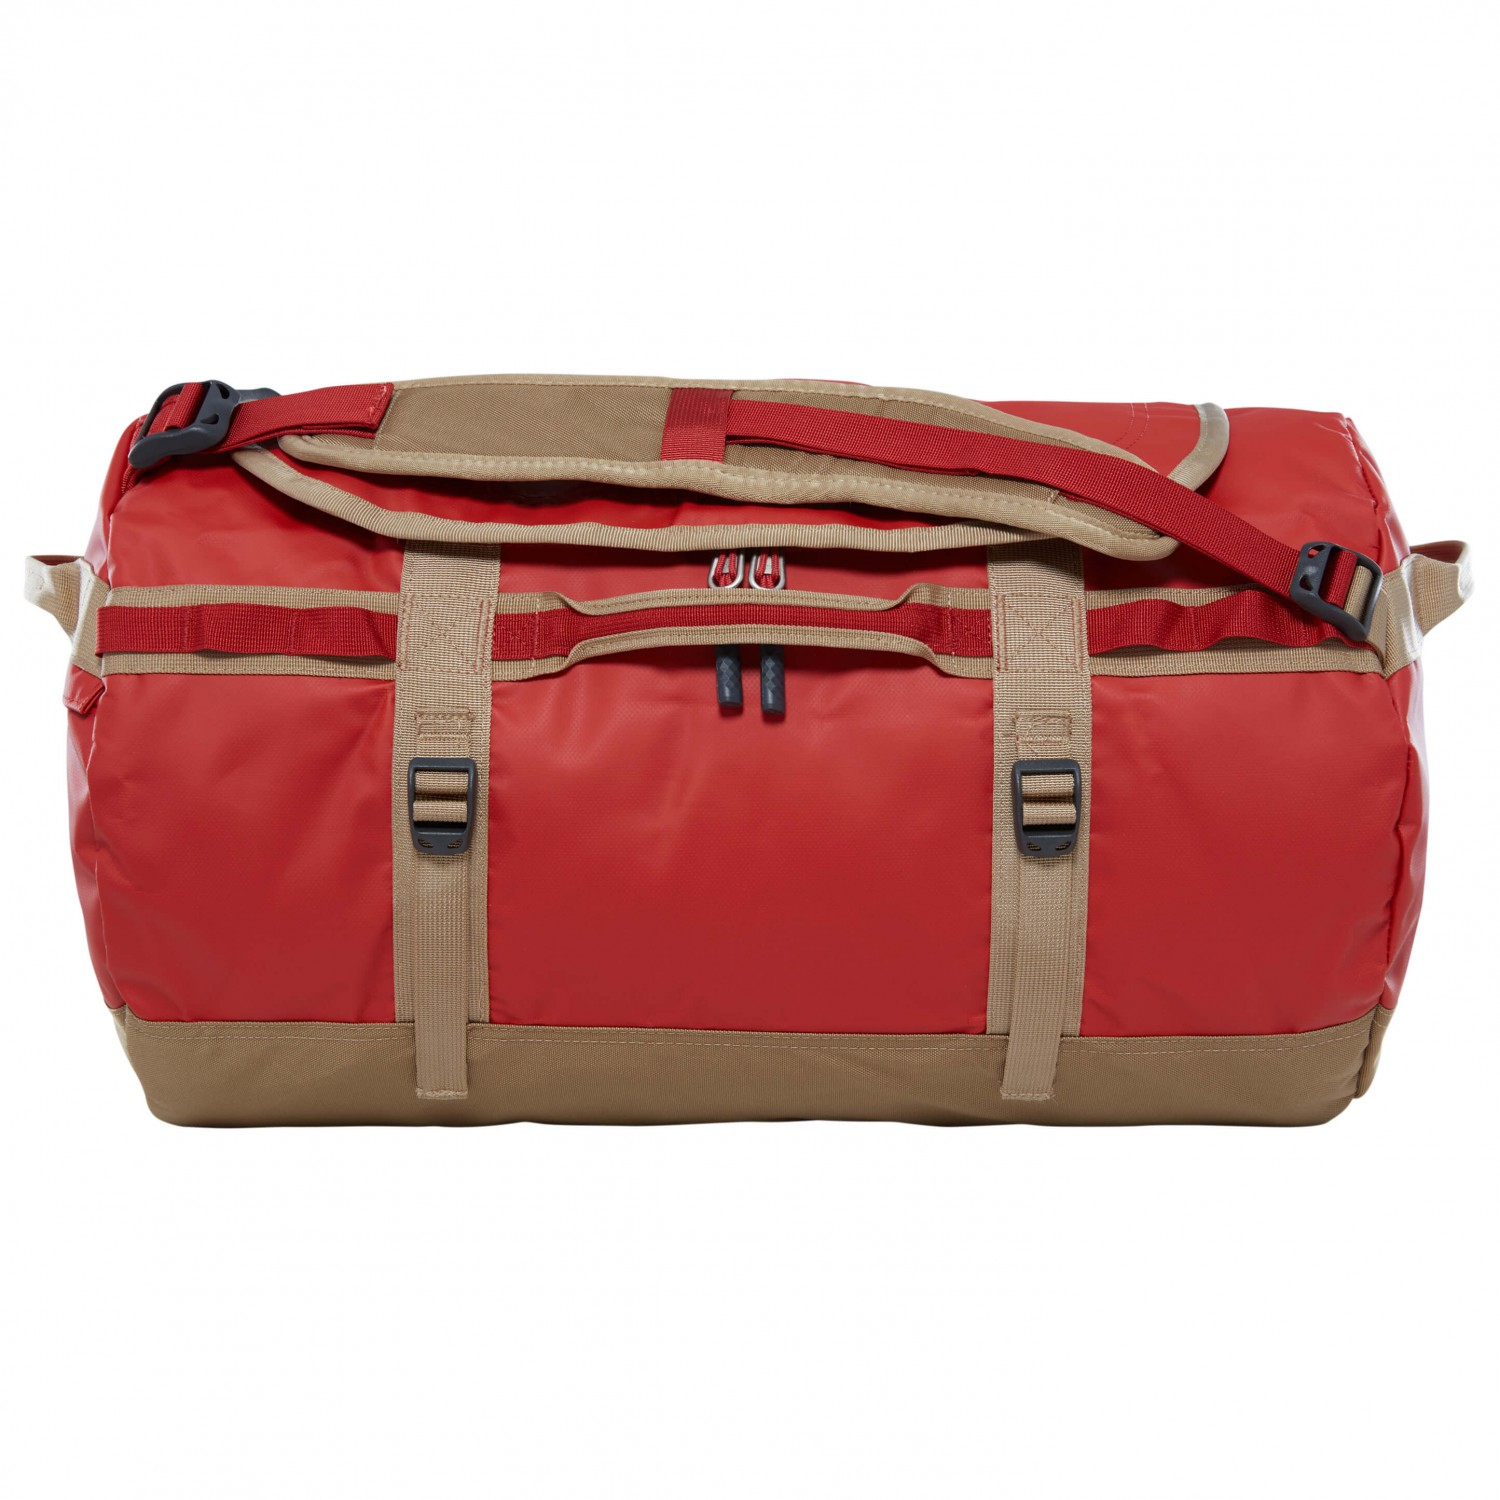 Tour Red Duffel Small Sac De Sport